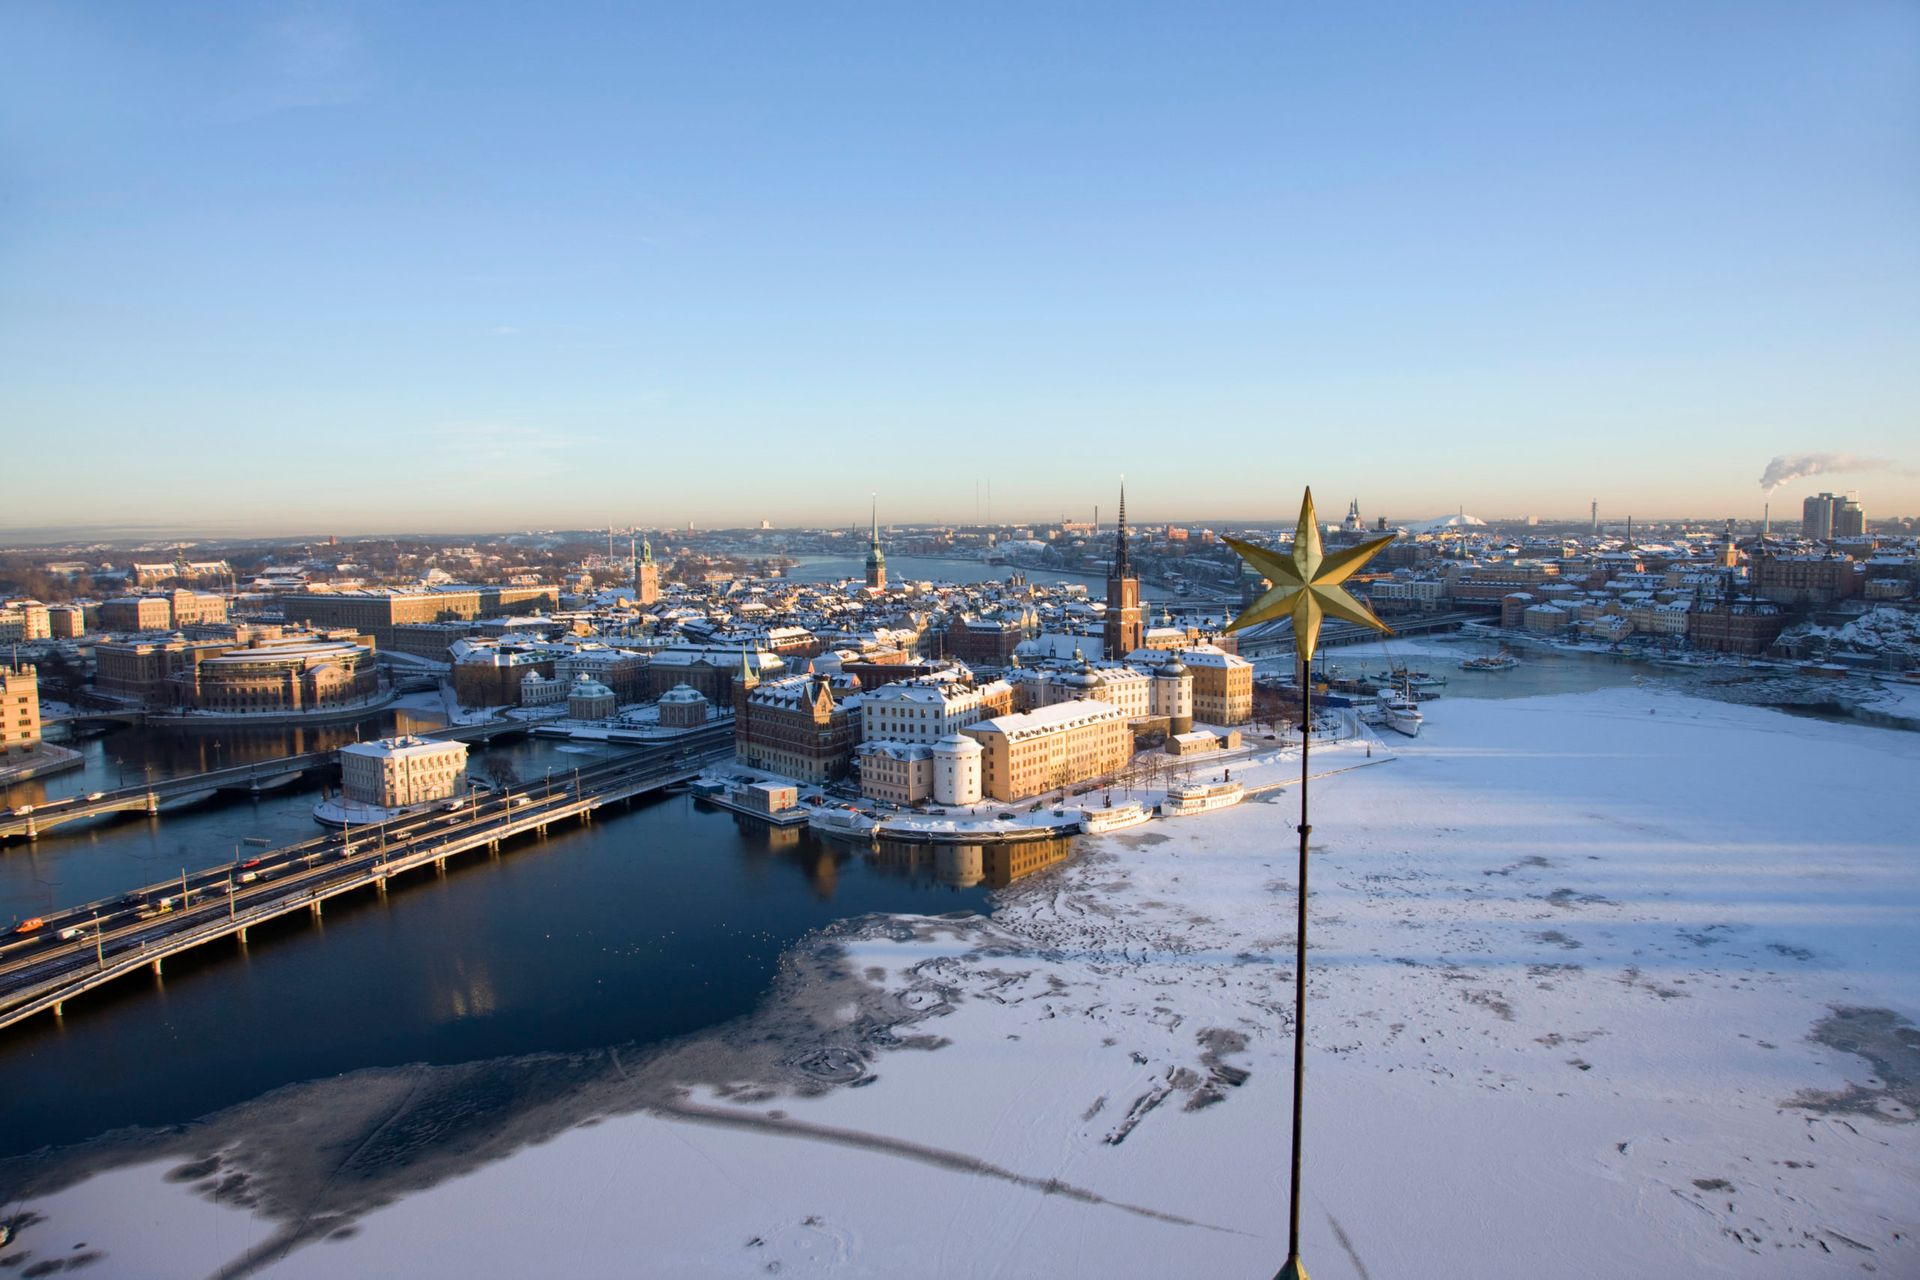 Wide shot of a snowy Stockholm.